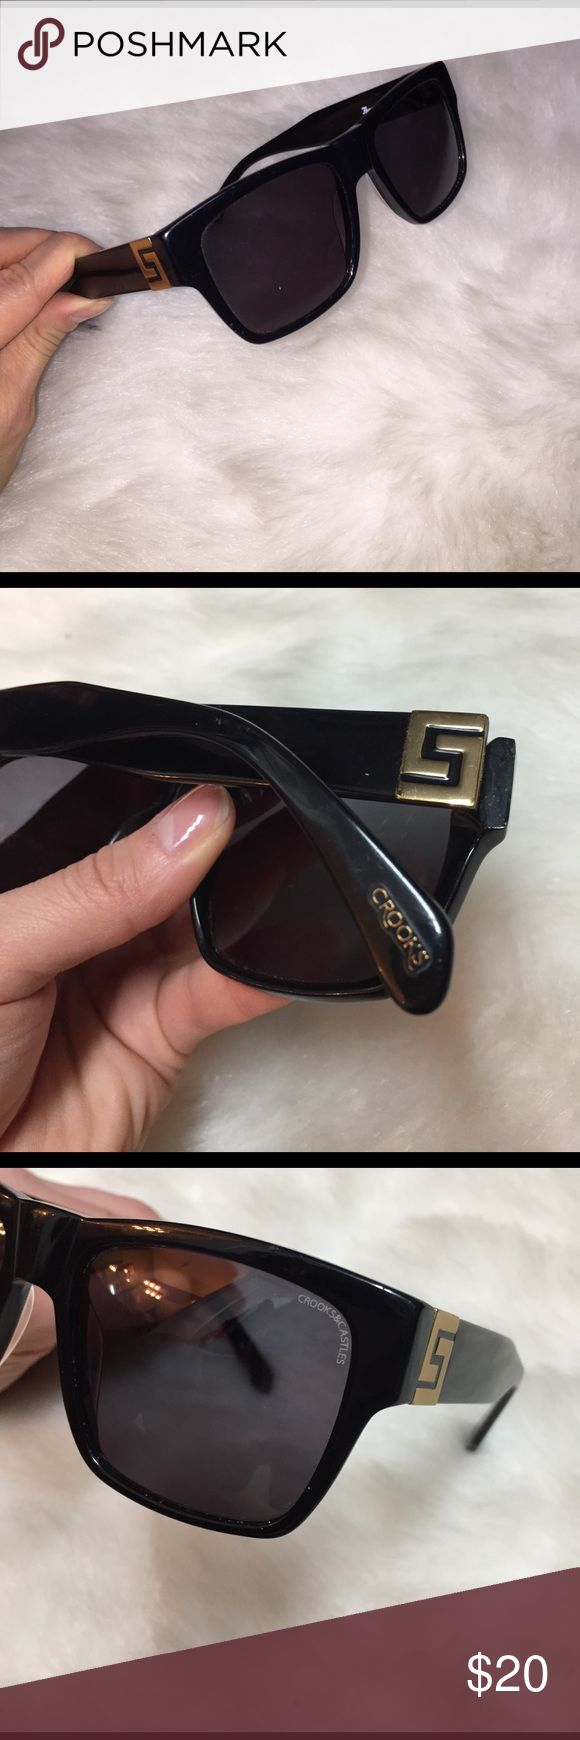 Crooks and Castles Sunglasses Crooks and Castles Sunglasses  these are high quality and UV Protective. Very nice Sunglasses. crooks and castles Accessories Sunglasses